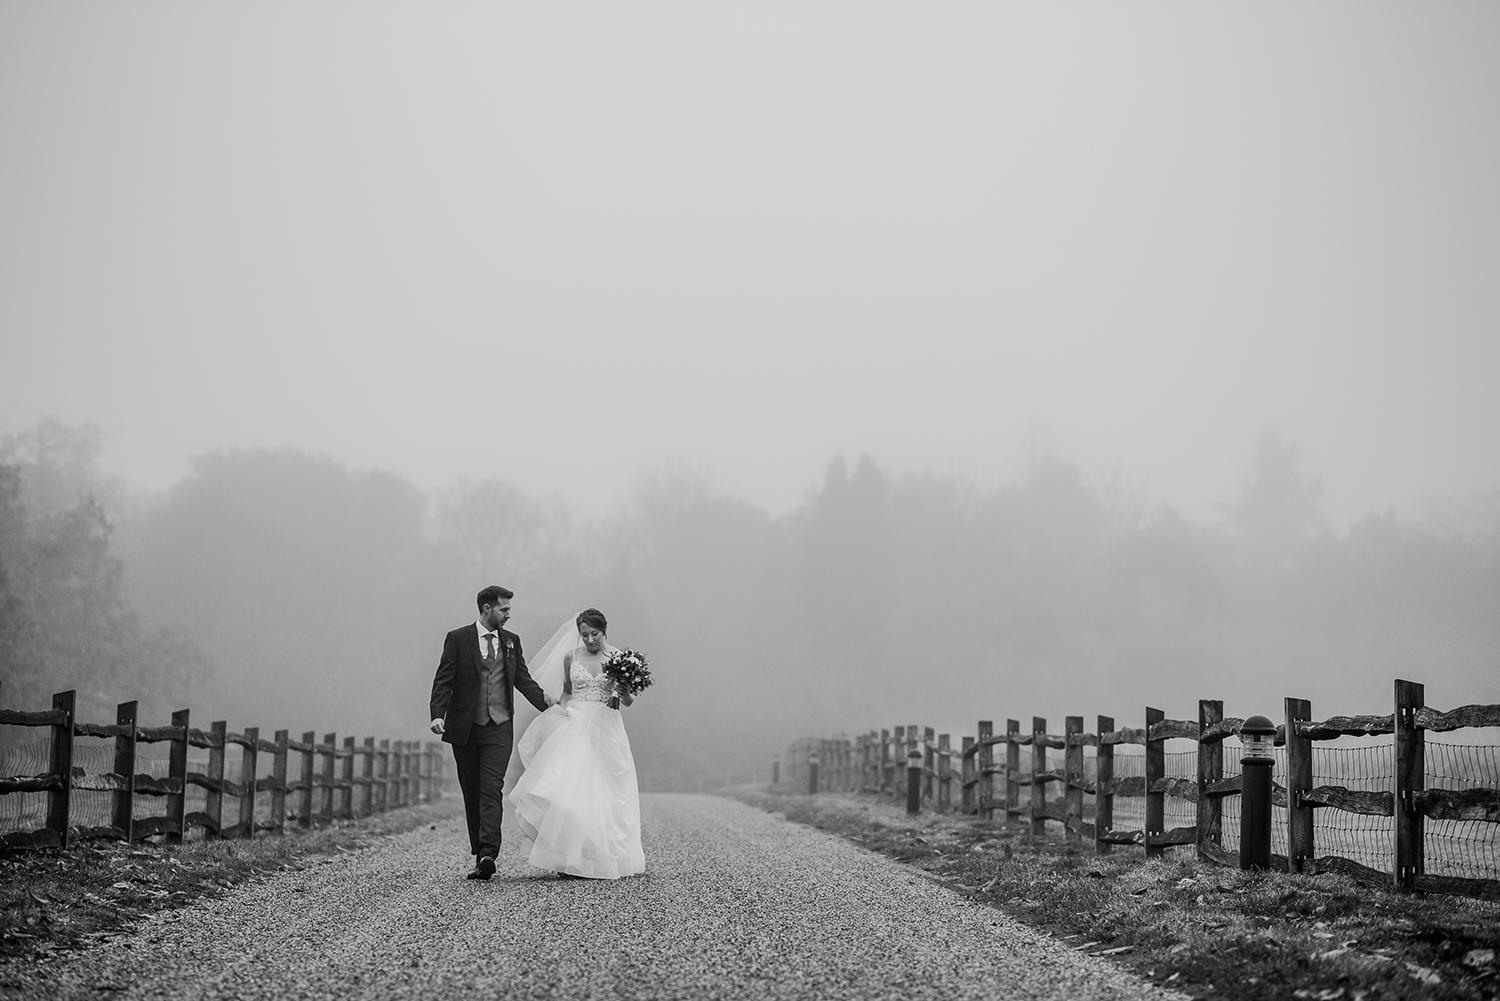 BW photo of couple walking down the driveway in the mist